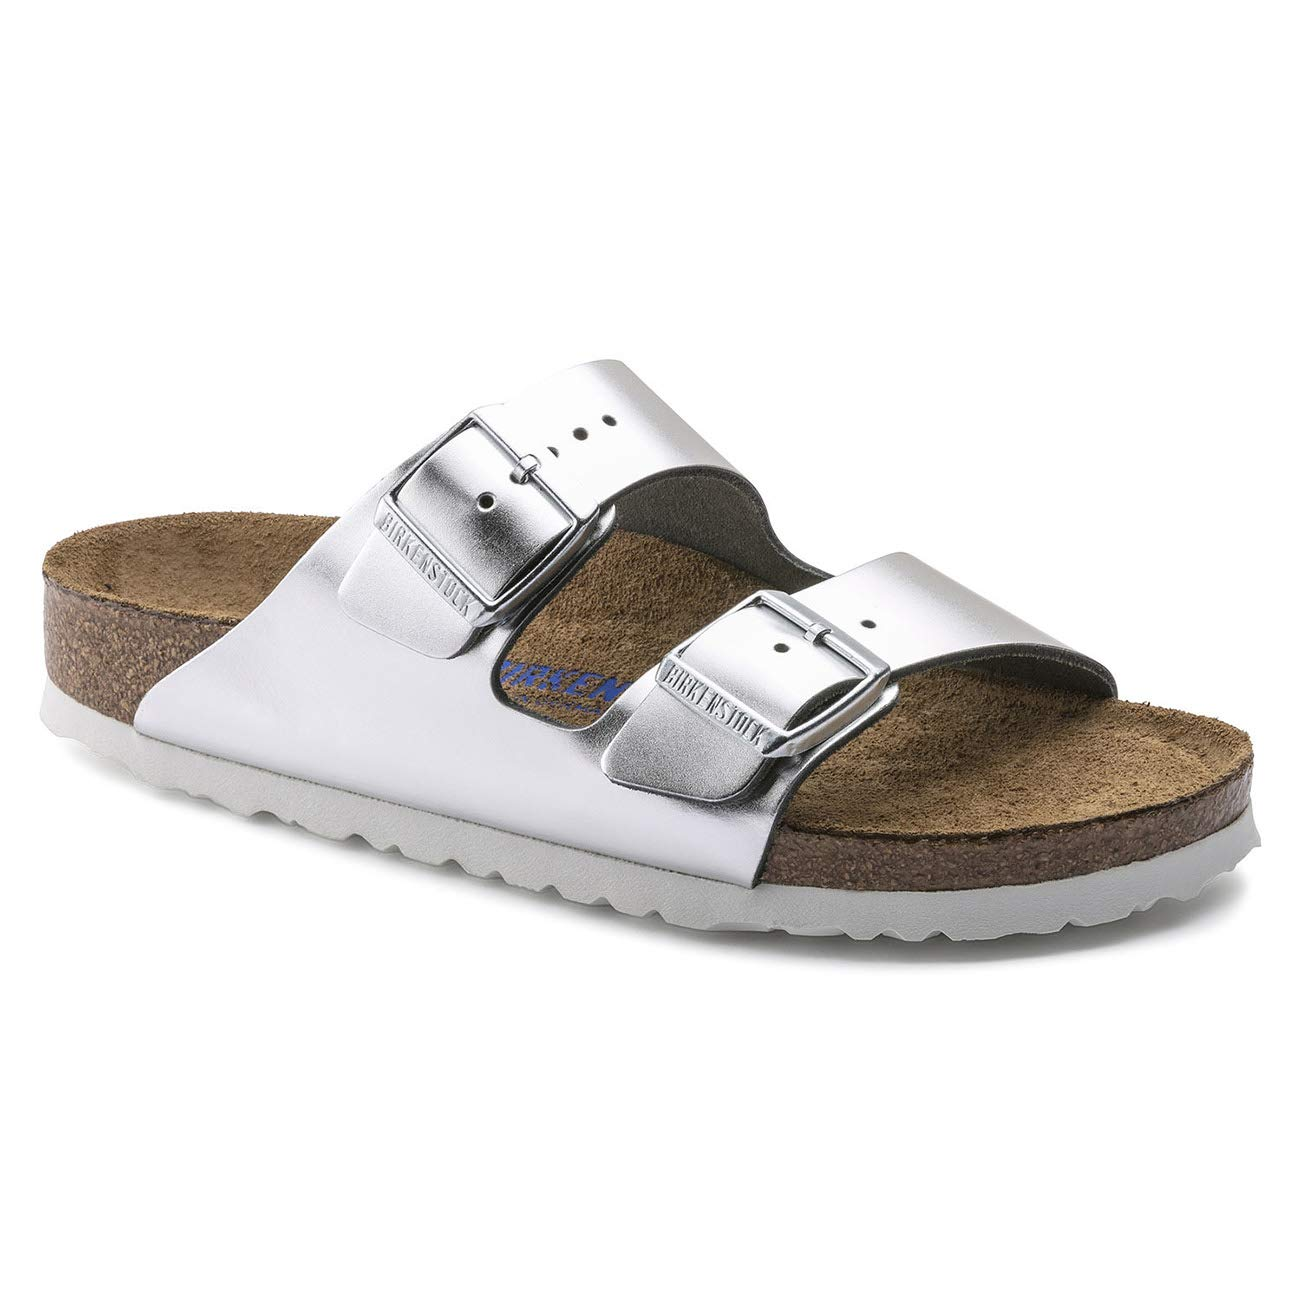 Birkenstock Arizona Leather Sandals Silver Size 36